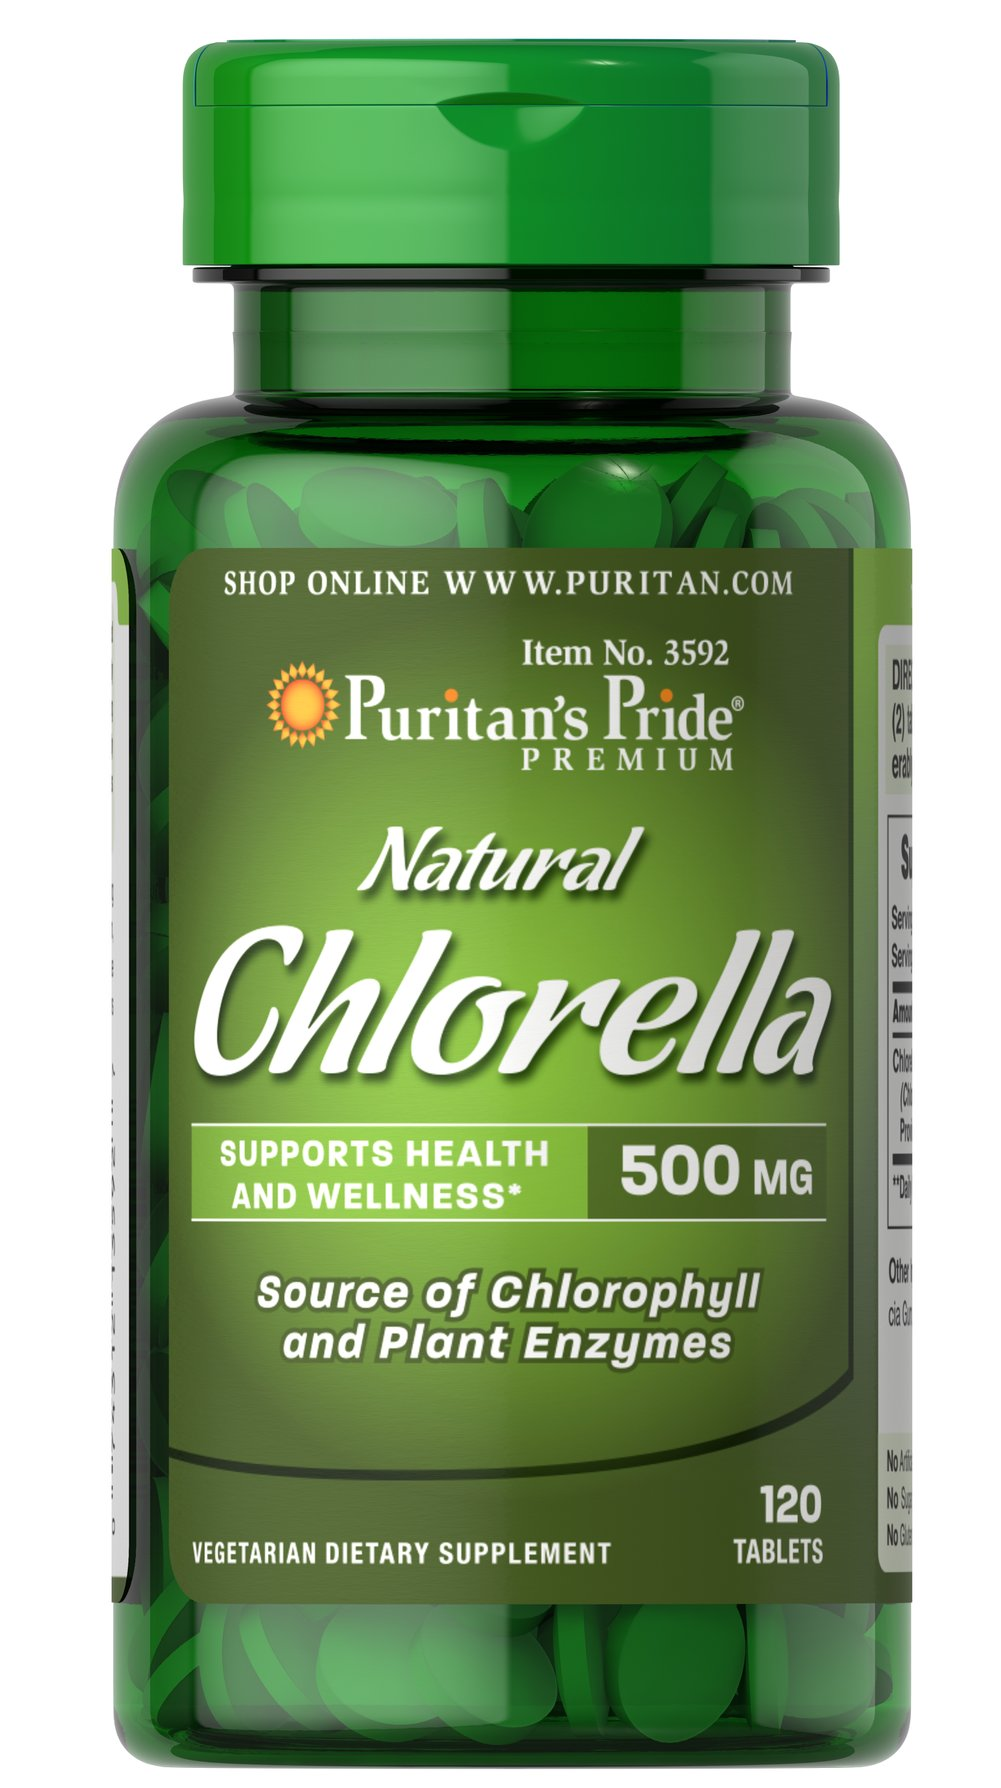 Natural Chlorella 500 mg  120 Tablets 500 mg $12.99